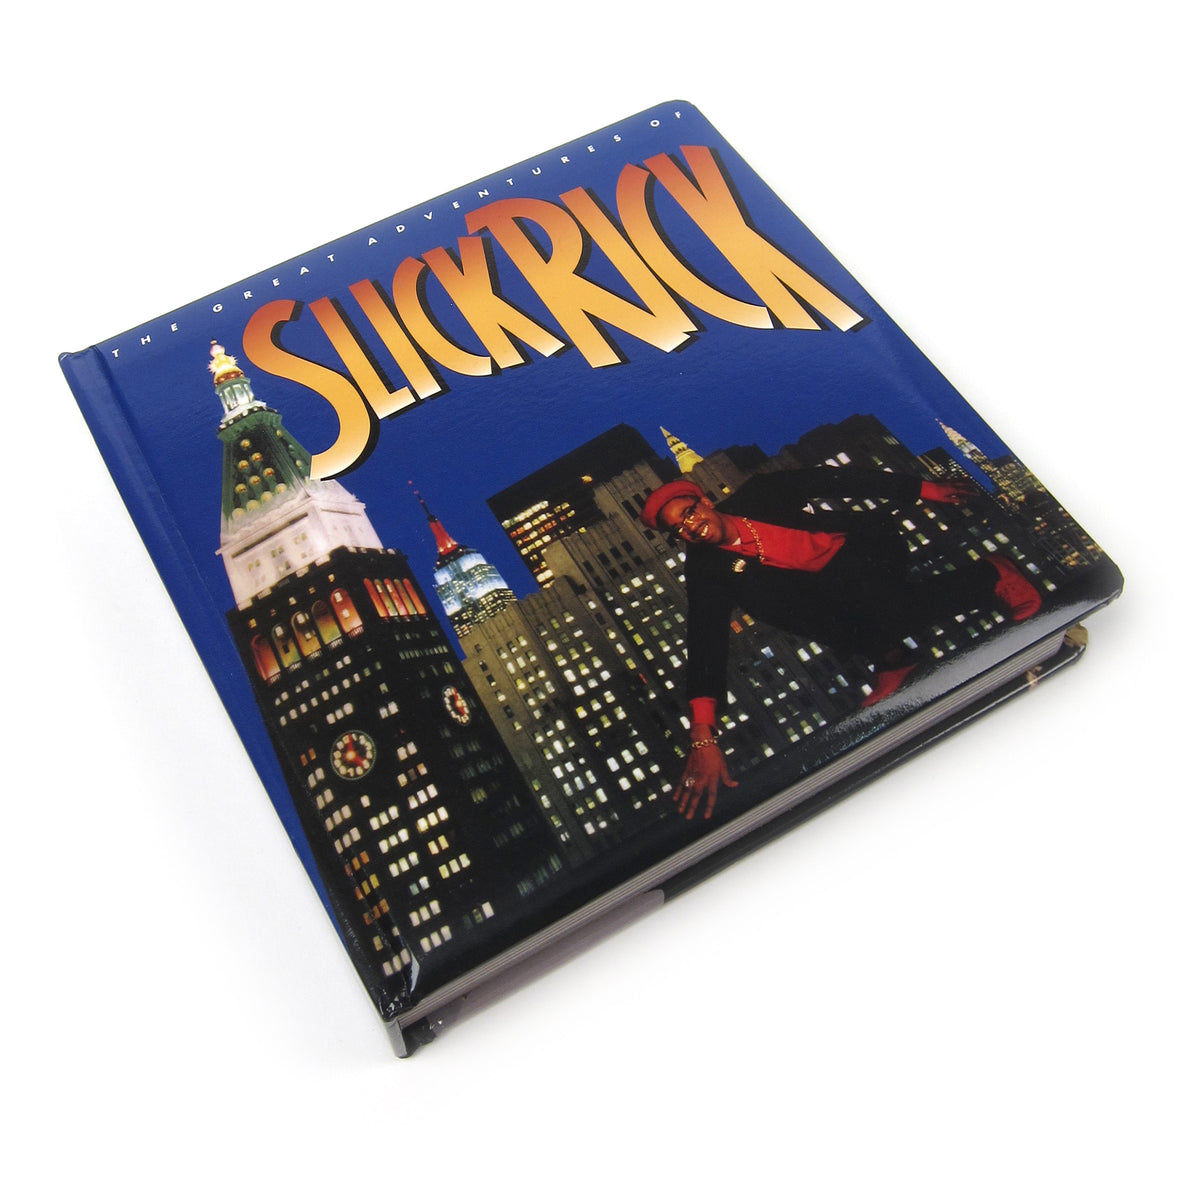 Slick Rick The Great Adventures Of Slick Rick Cd Children